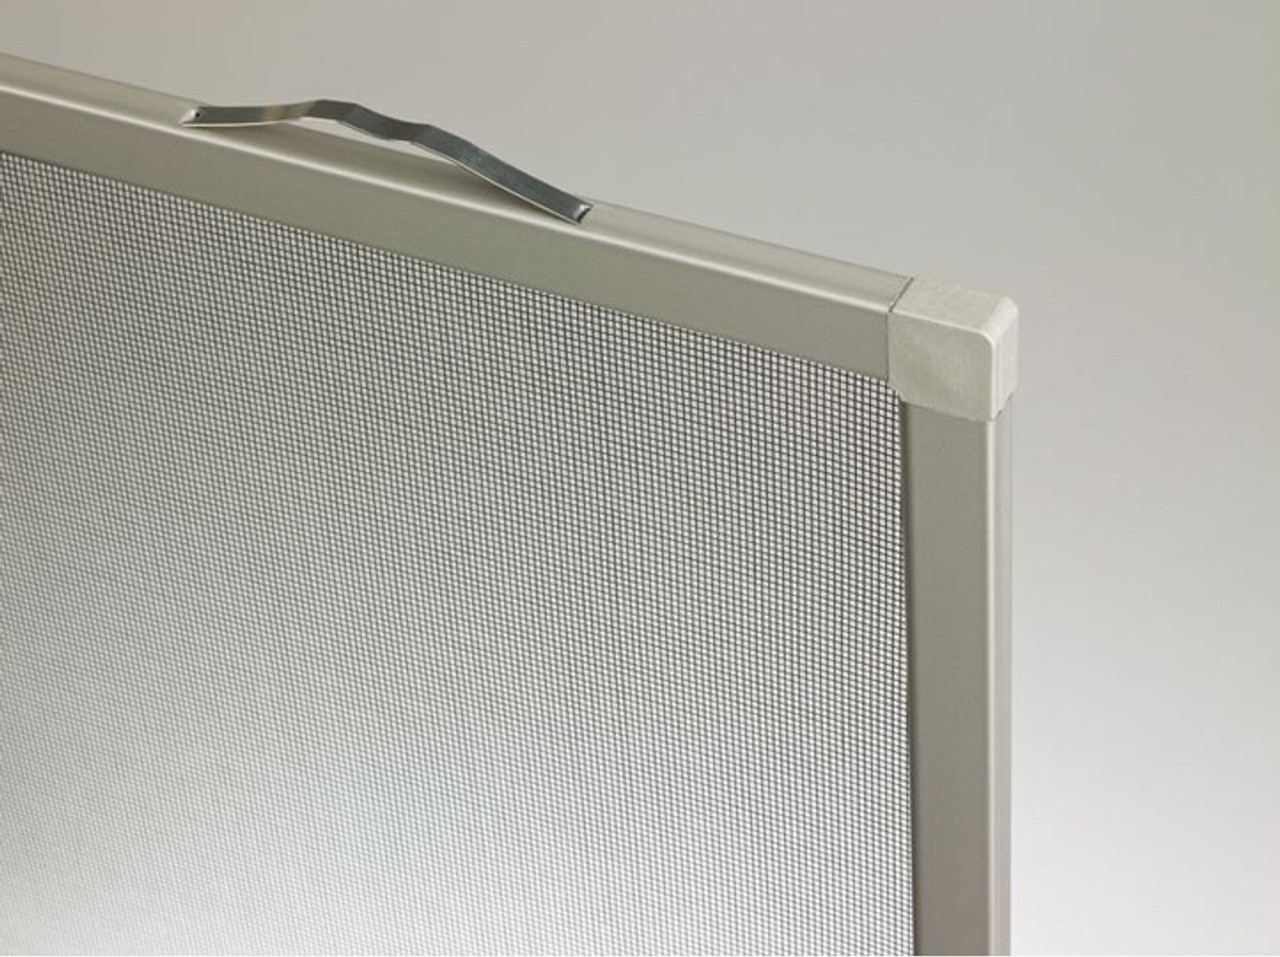 Top leaf spring style casement (clad window only) screen manufactured Nov 95 to present